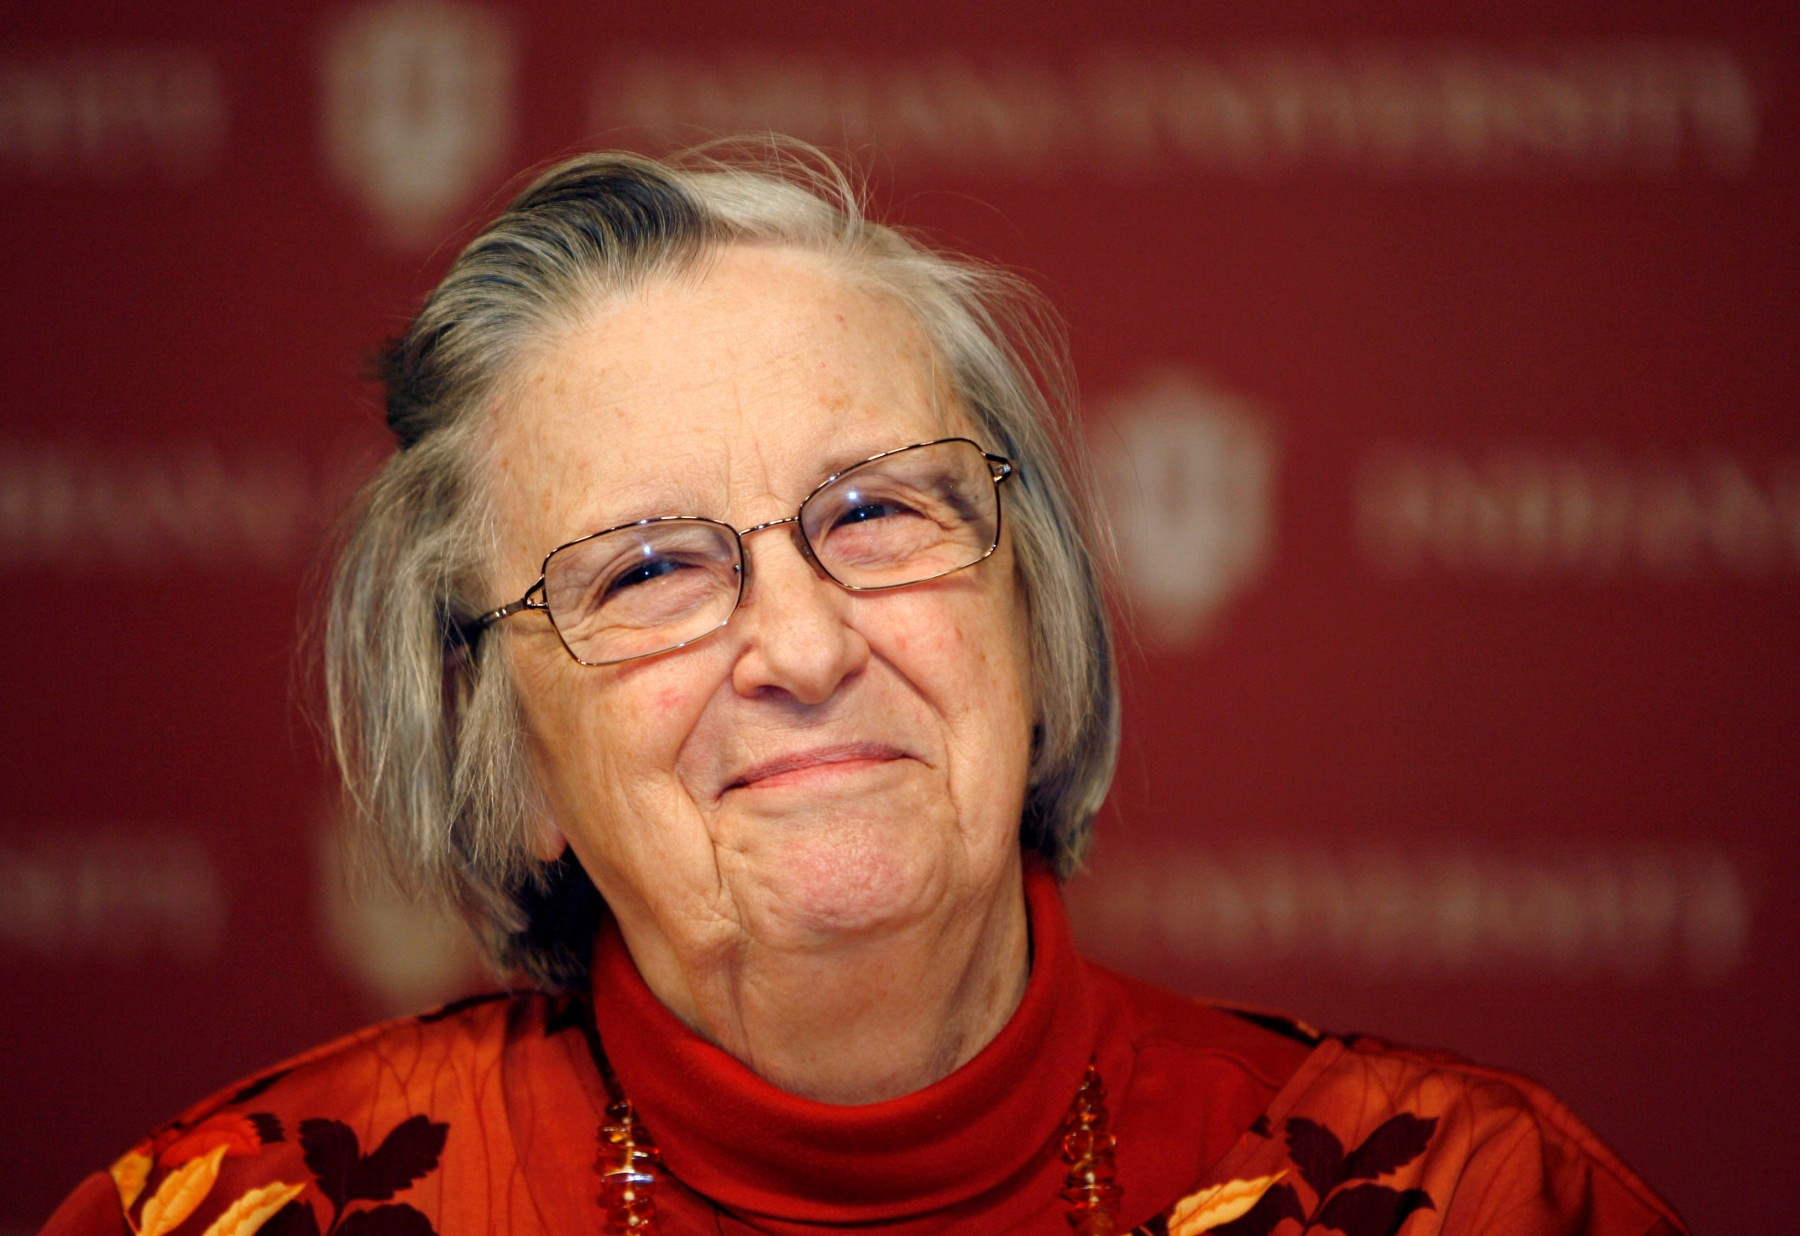 /how-can-decentralized-governance-shift-to-a-results-oriented-way-part-2-elinor-ostrom-86397556c9af feature image